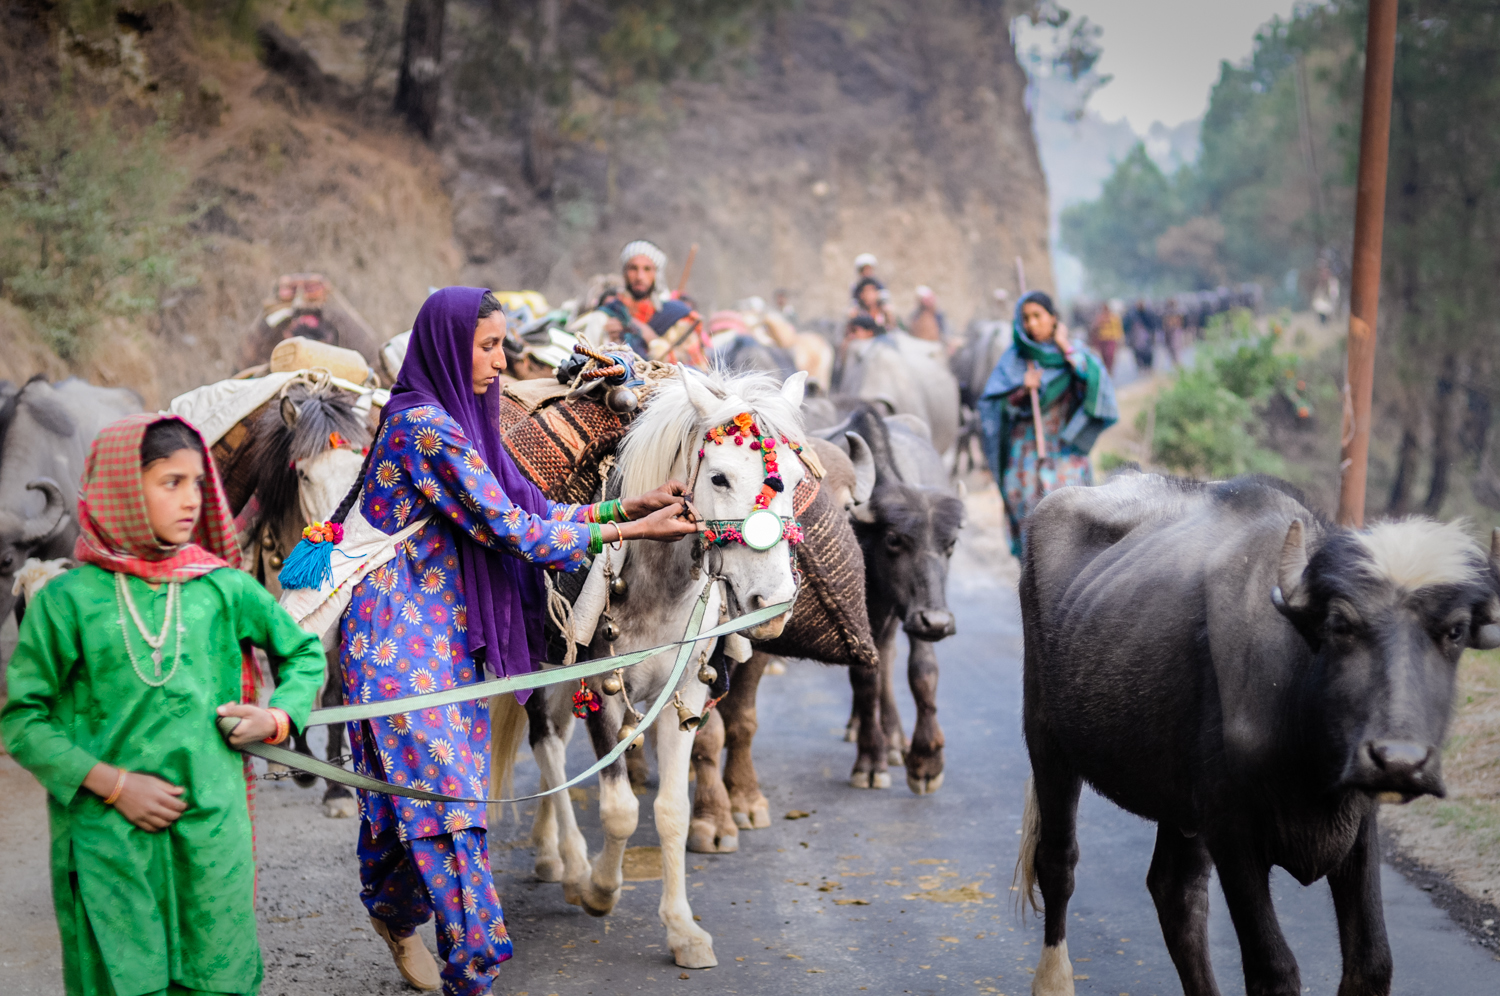 Moving the animals up the Yamuna Valley, in the foothills of the Himalayas. Here, Khatoon is adjusting the halter on a pack horse.